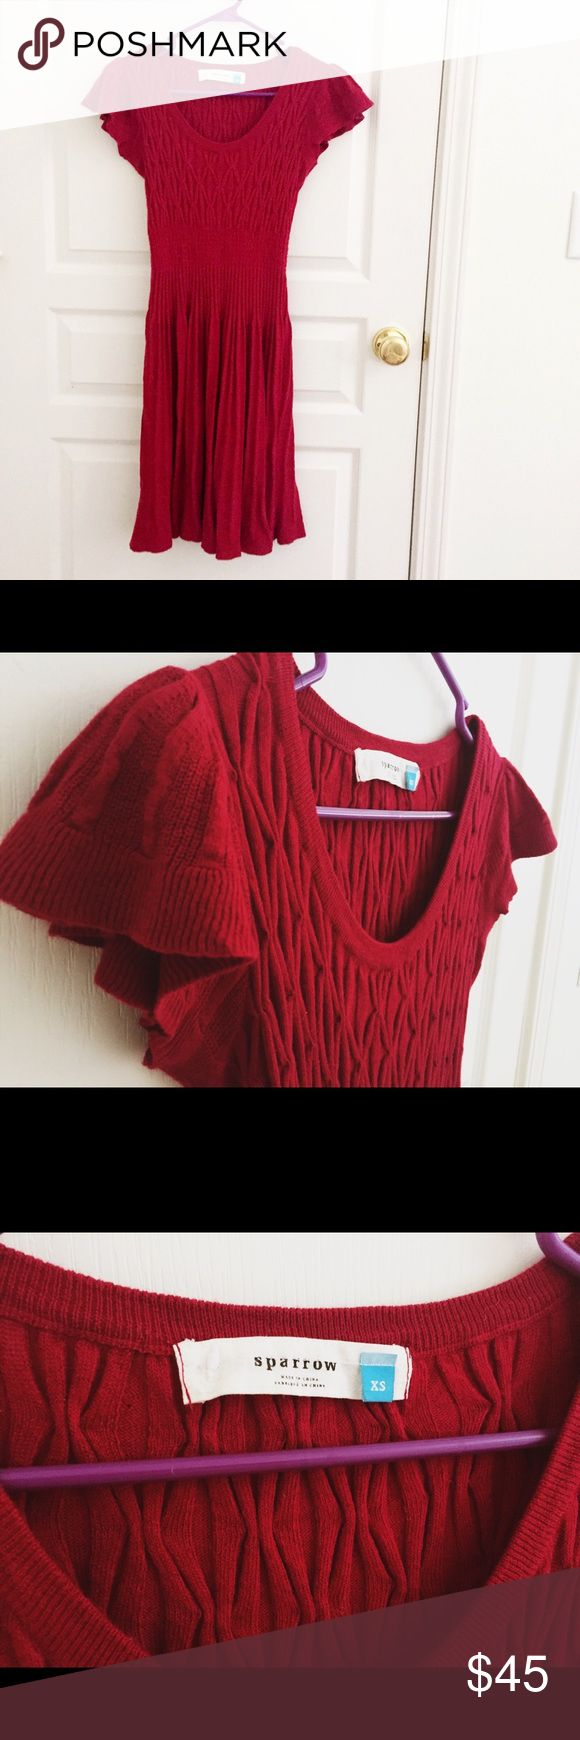 Selling this Anthropologie sparrow sweater dress red on Poshmark! My username is: wanderlust83. #shopmycloset #poshmark #fashion #shopping #style #forsale #Anthropologie #Dresses & Skirts